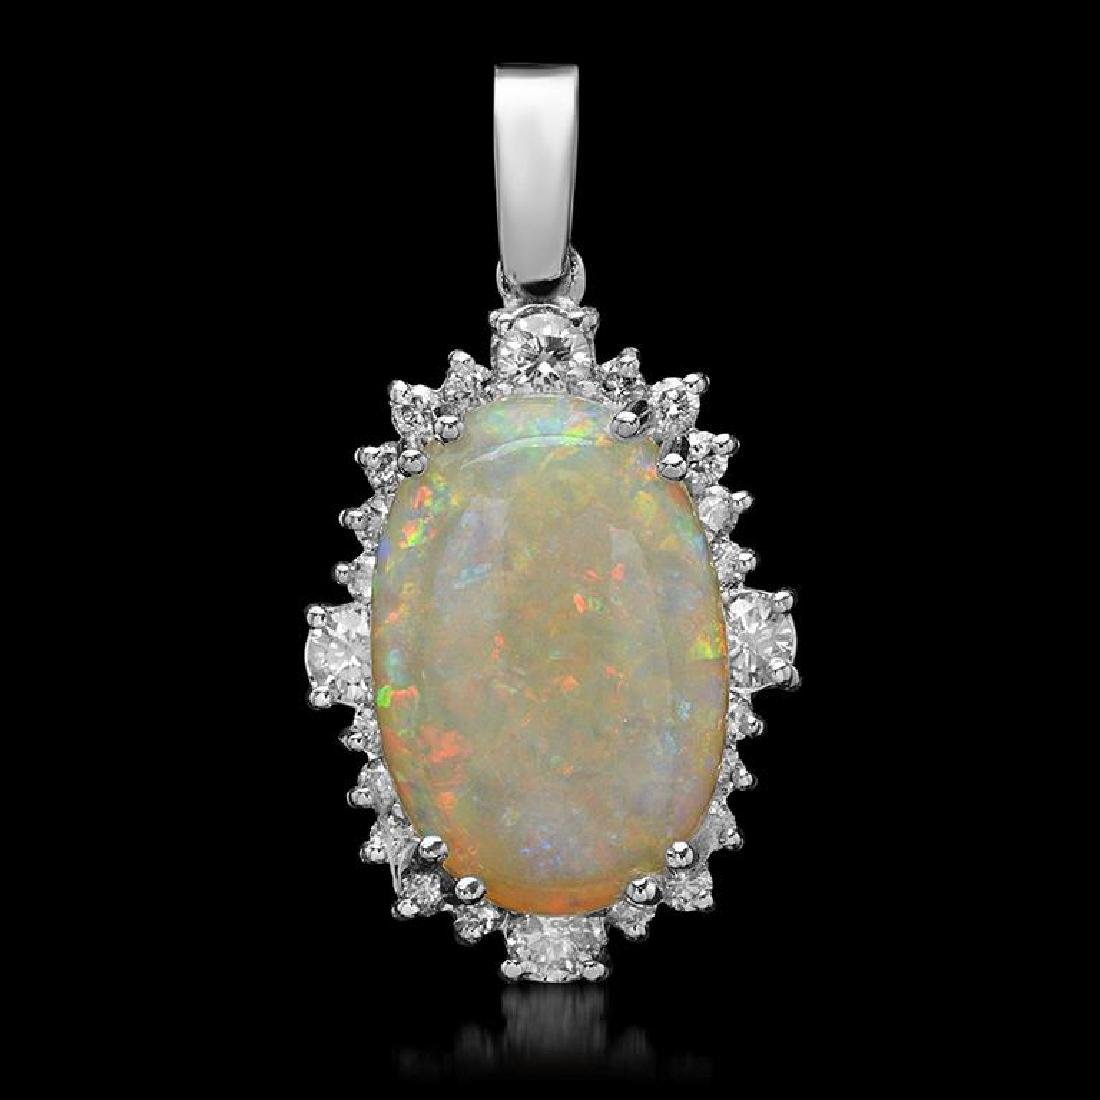 14K Gold 5.87ct Opal 1.11ct Diamond Pendant